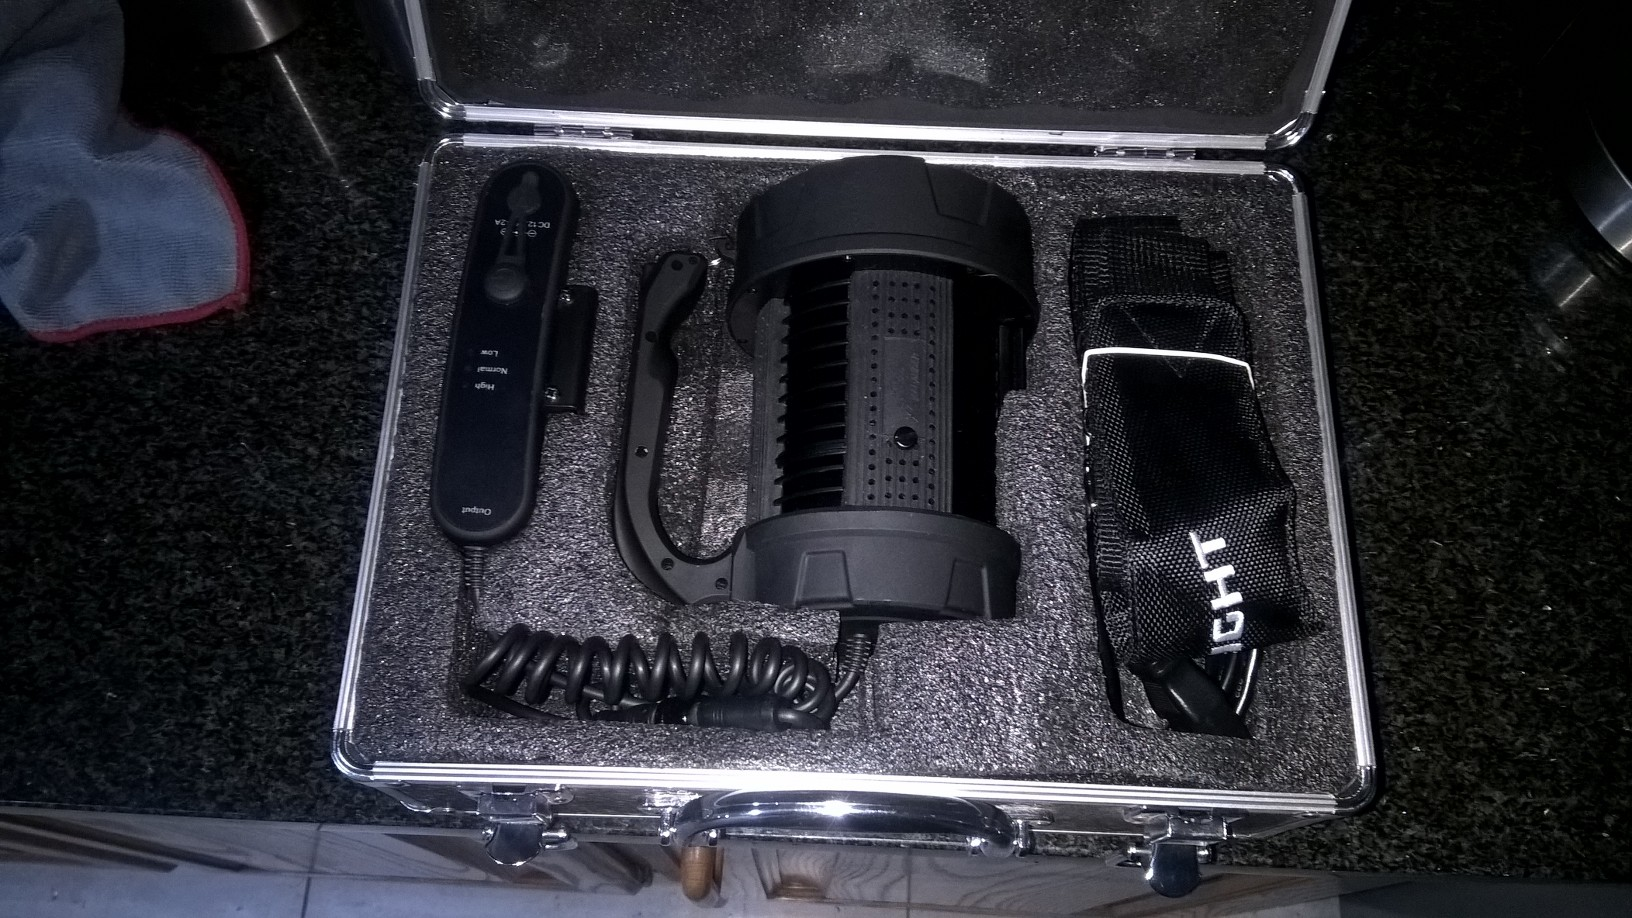 O-light X 6 Marauder monster search and rescue flashlight .